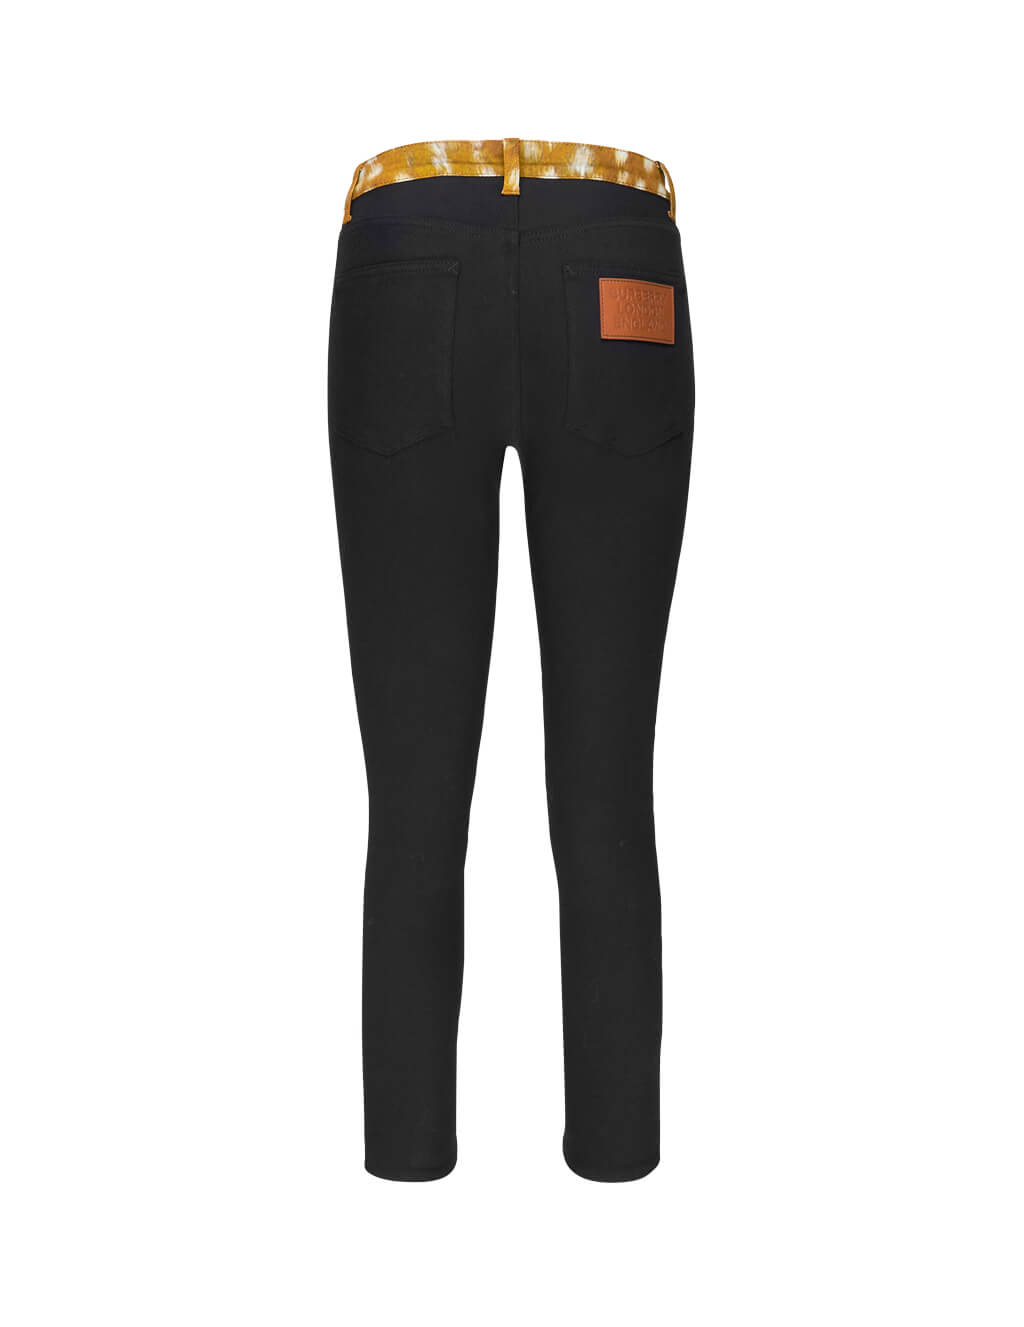 Burberry Women's Giulio Fashion Black Deer Trim Japanese Jeans 8016385A1189